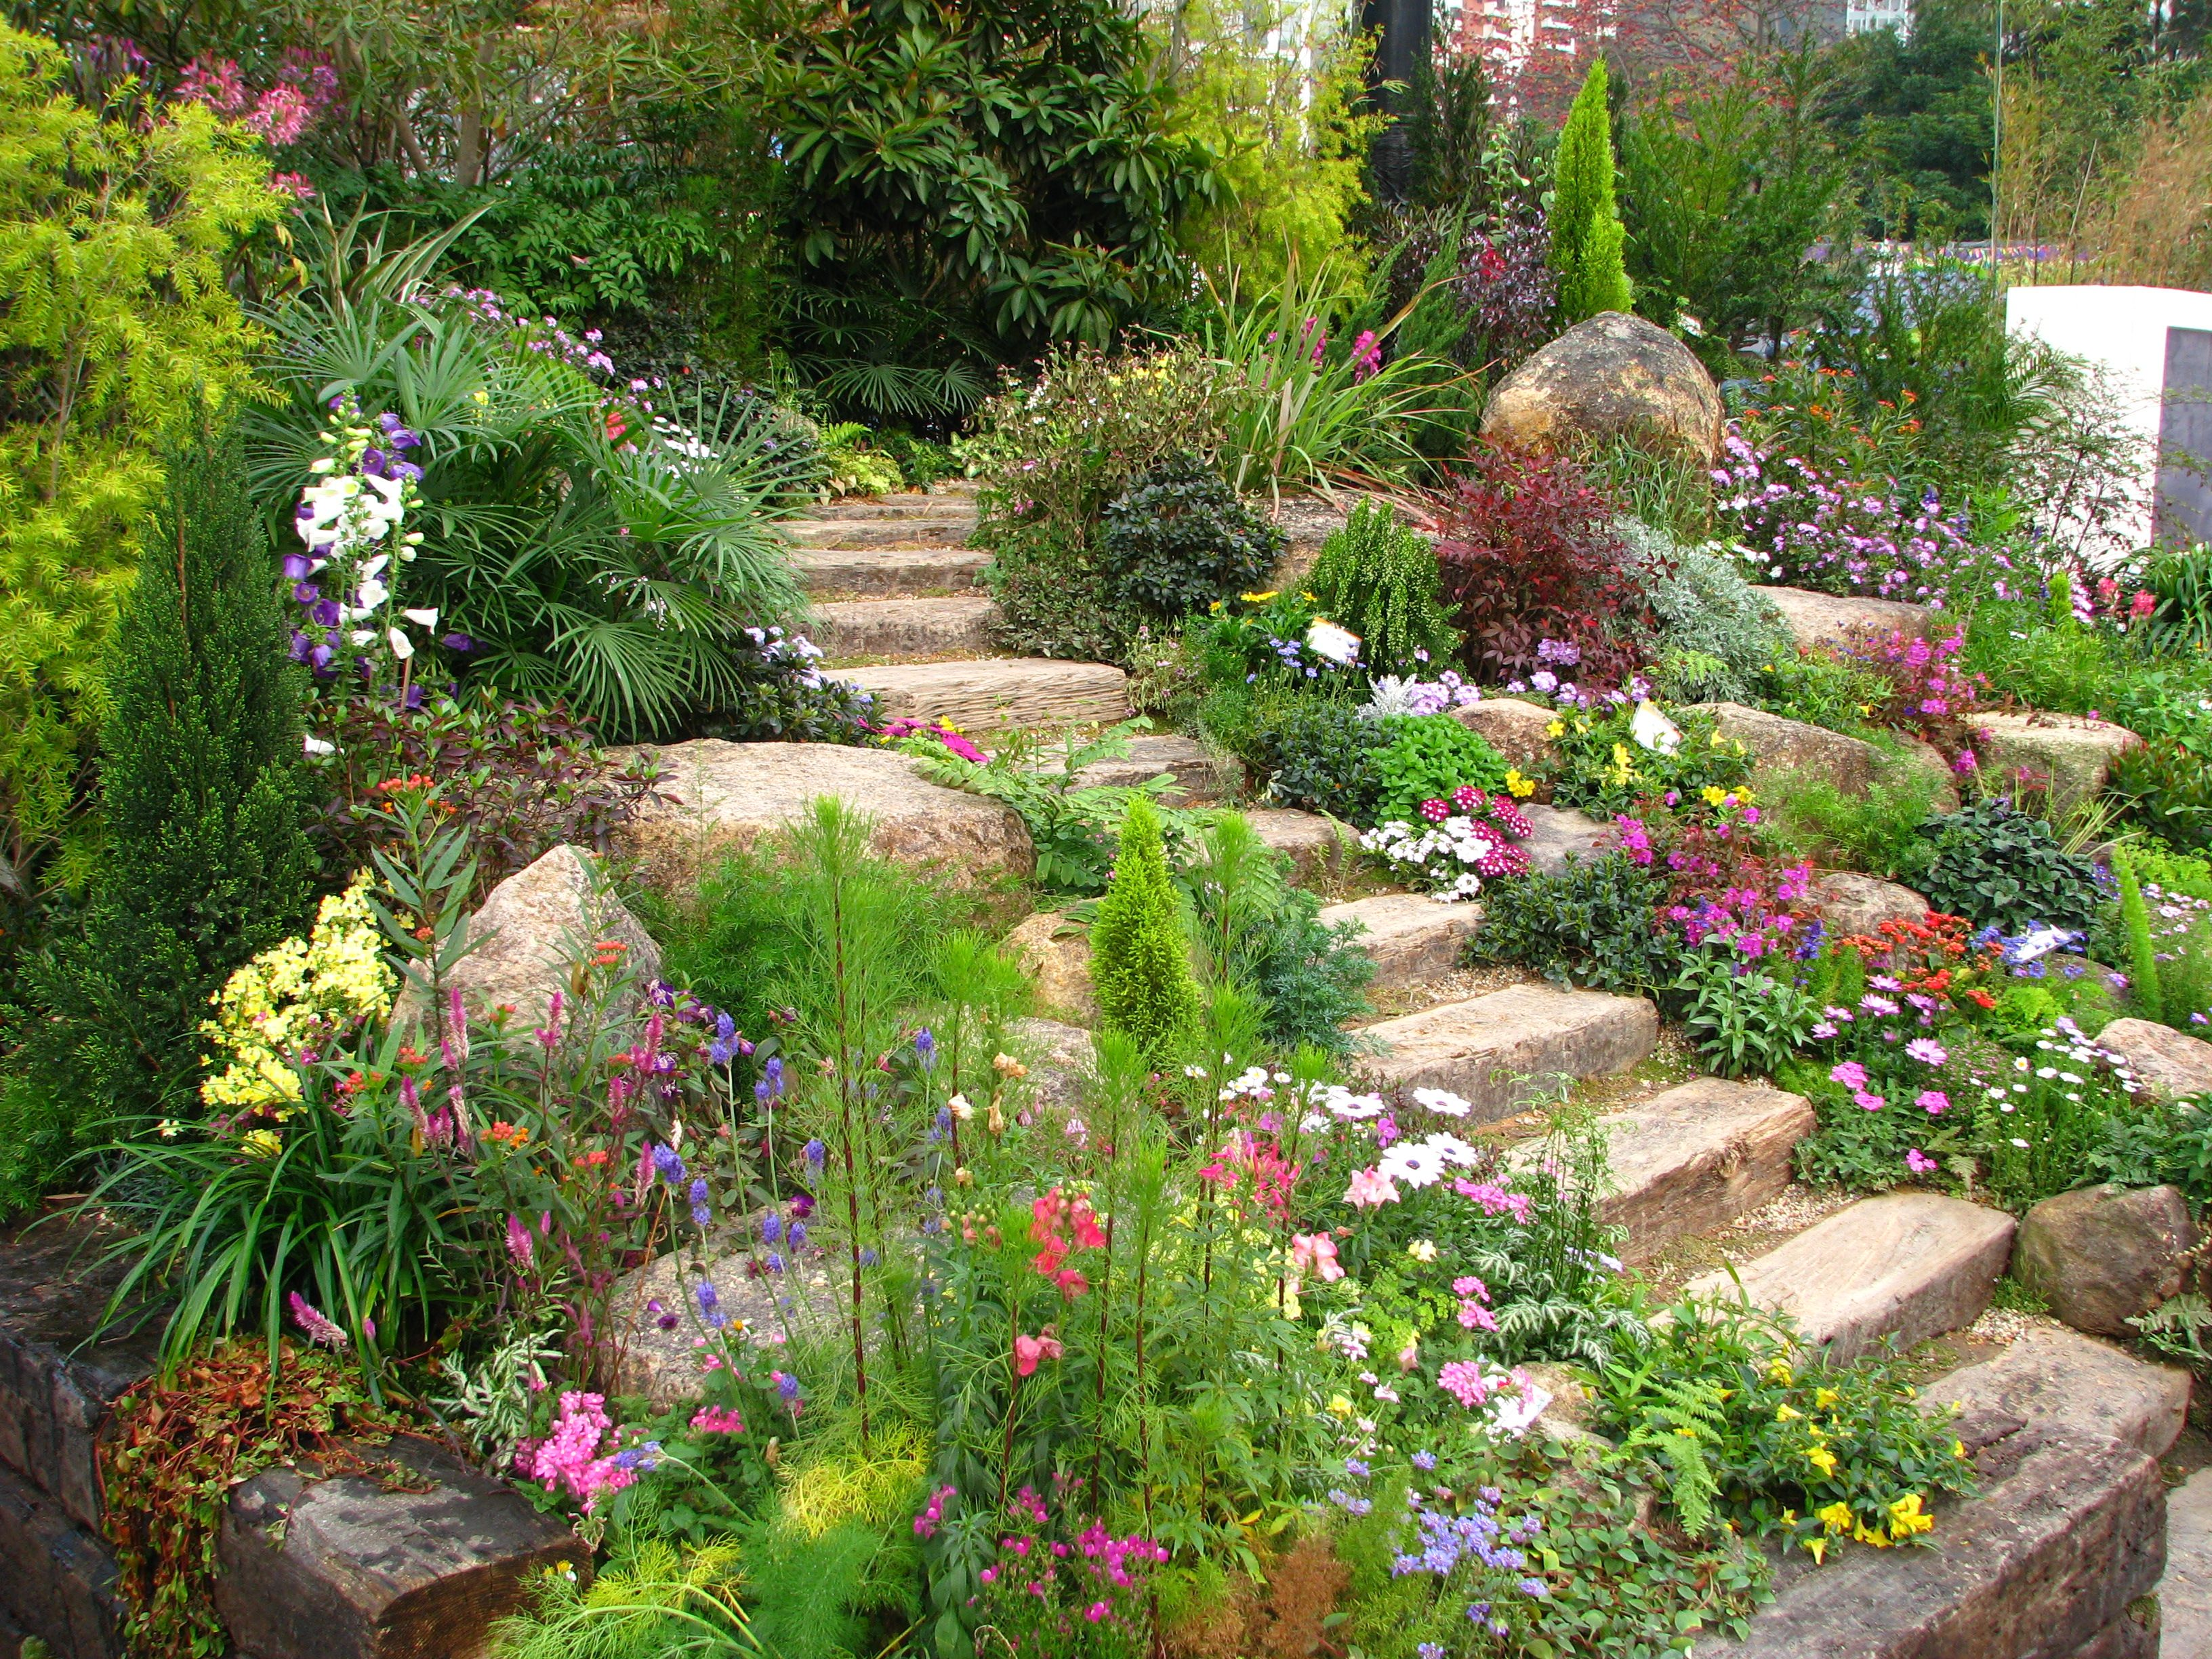 architecture rock garden design for backyard garden ideas home design gallery listed in stunning backyard landscape design ideas for your inspiration - Beautiful Garden Plans